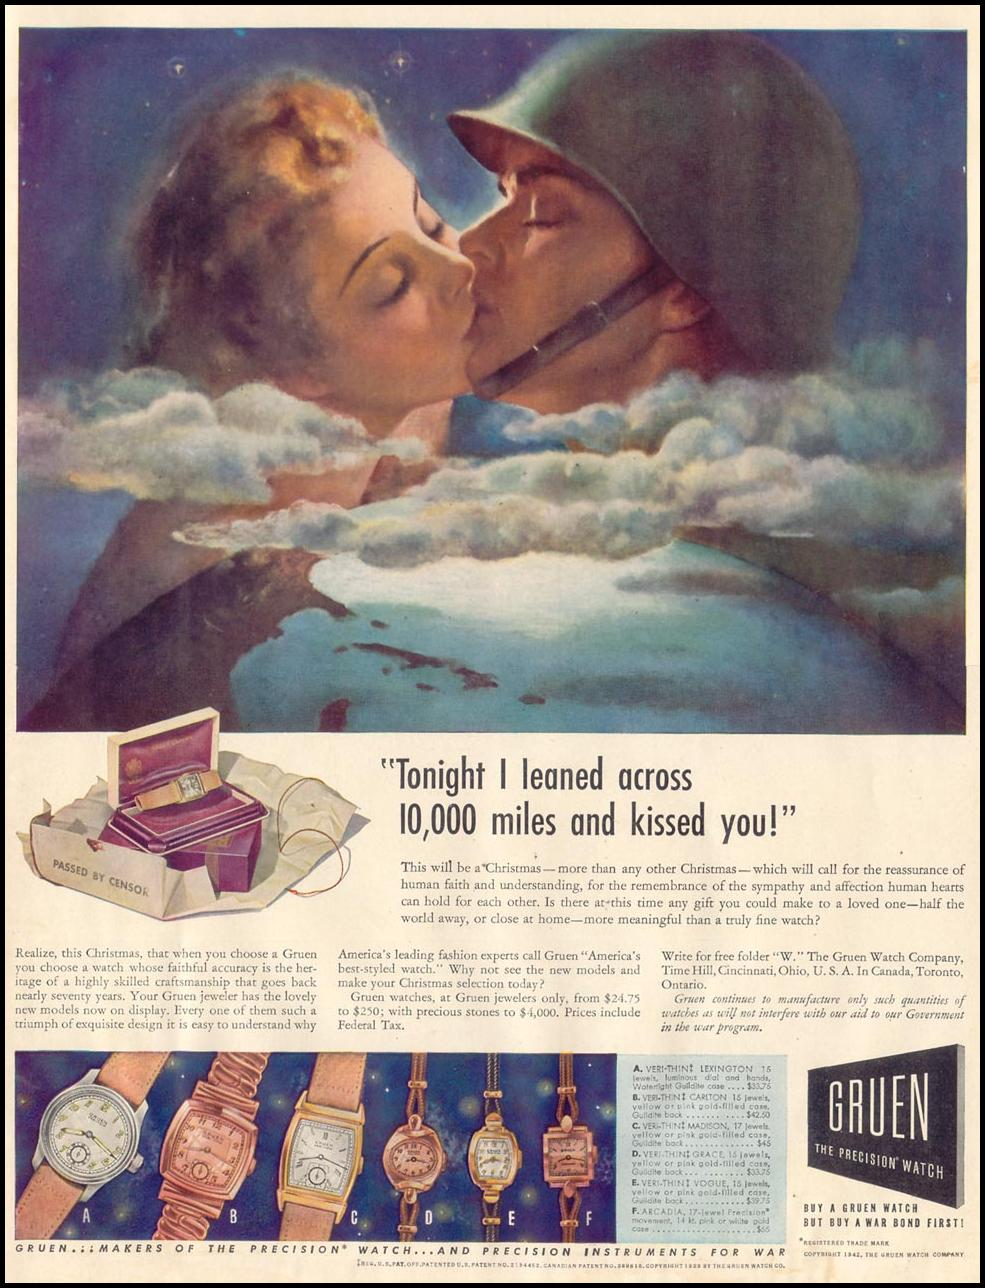 GRUEN PRECISION WATCHES LIFE 11/30/1942